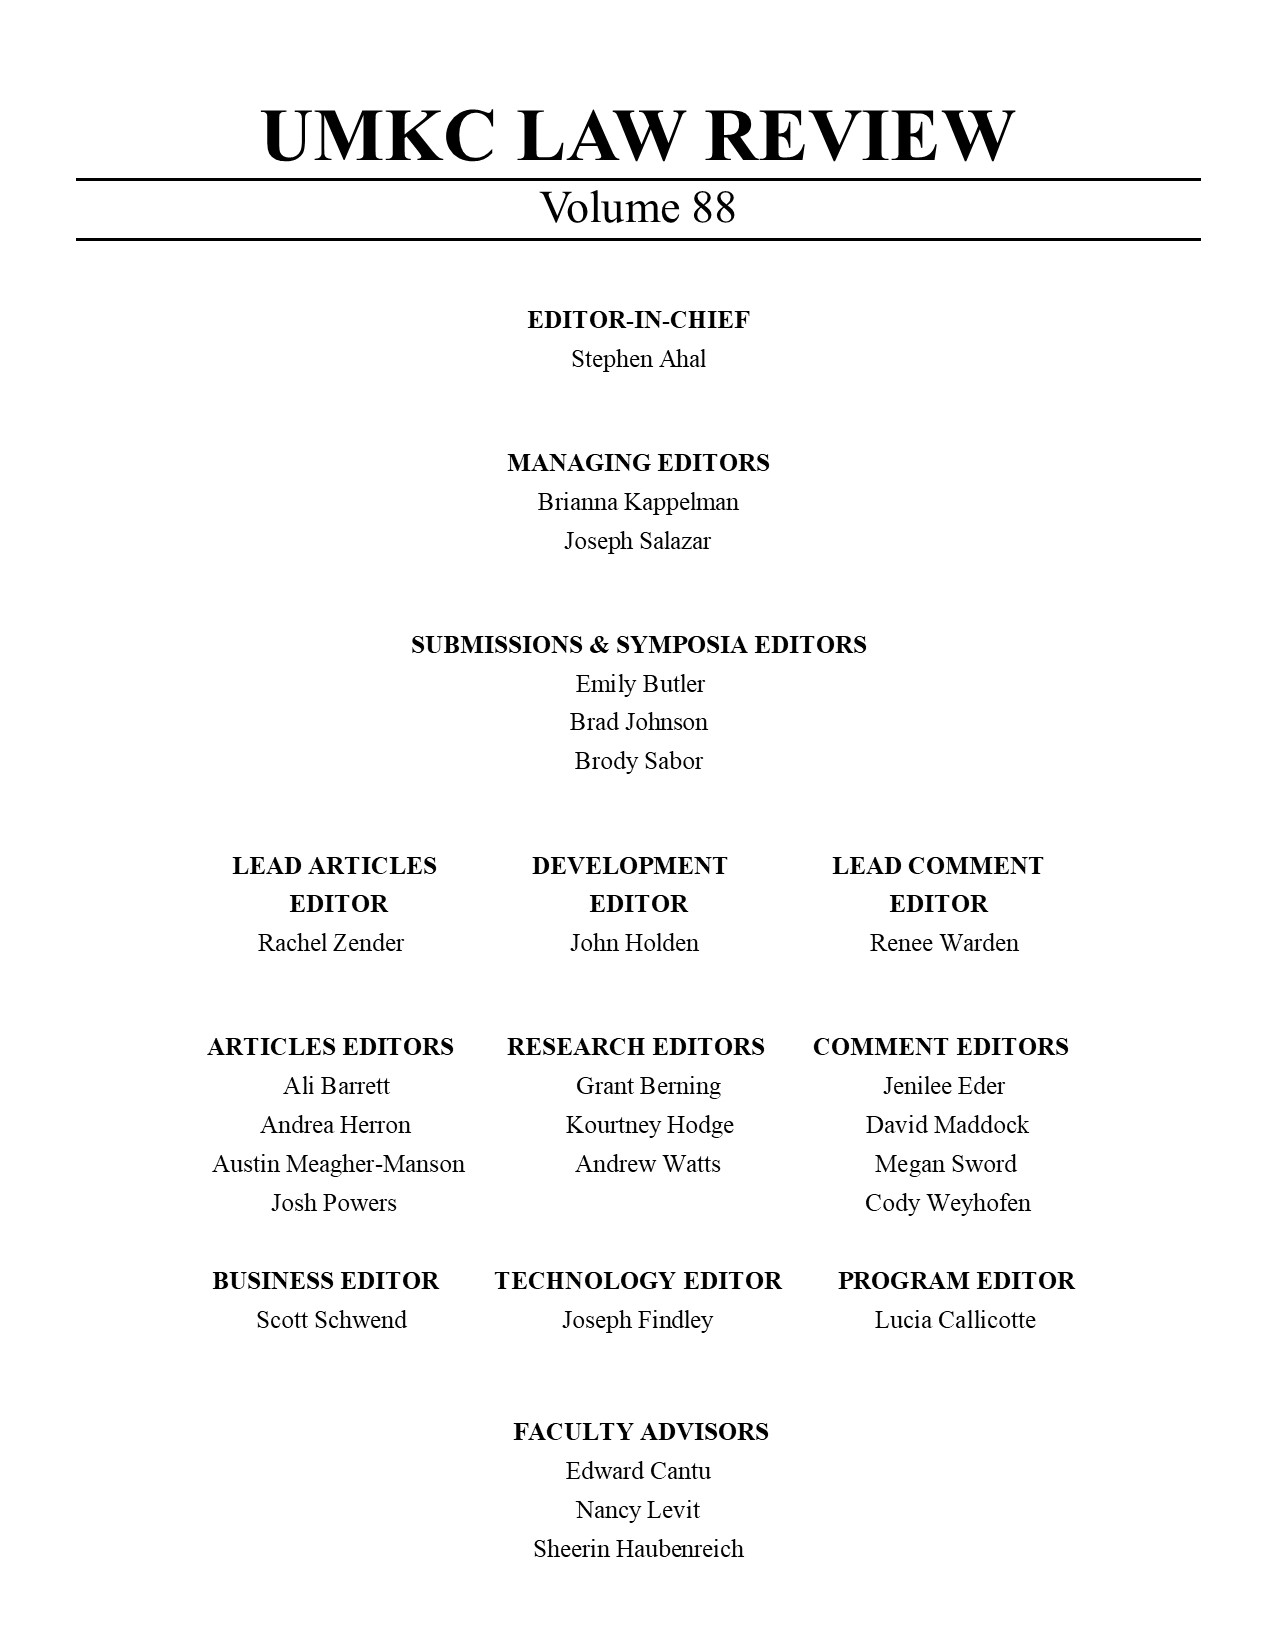 Volume 88 Editorial Board